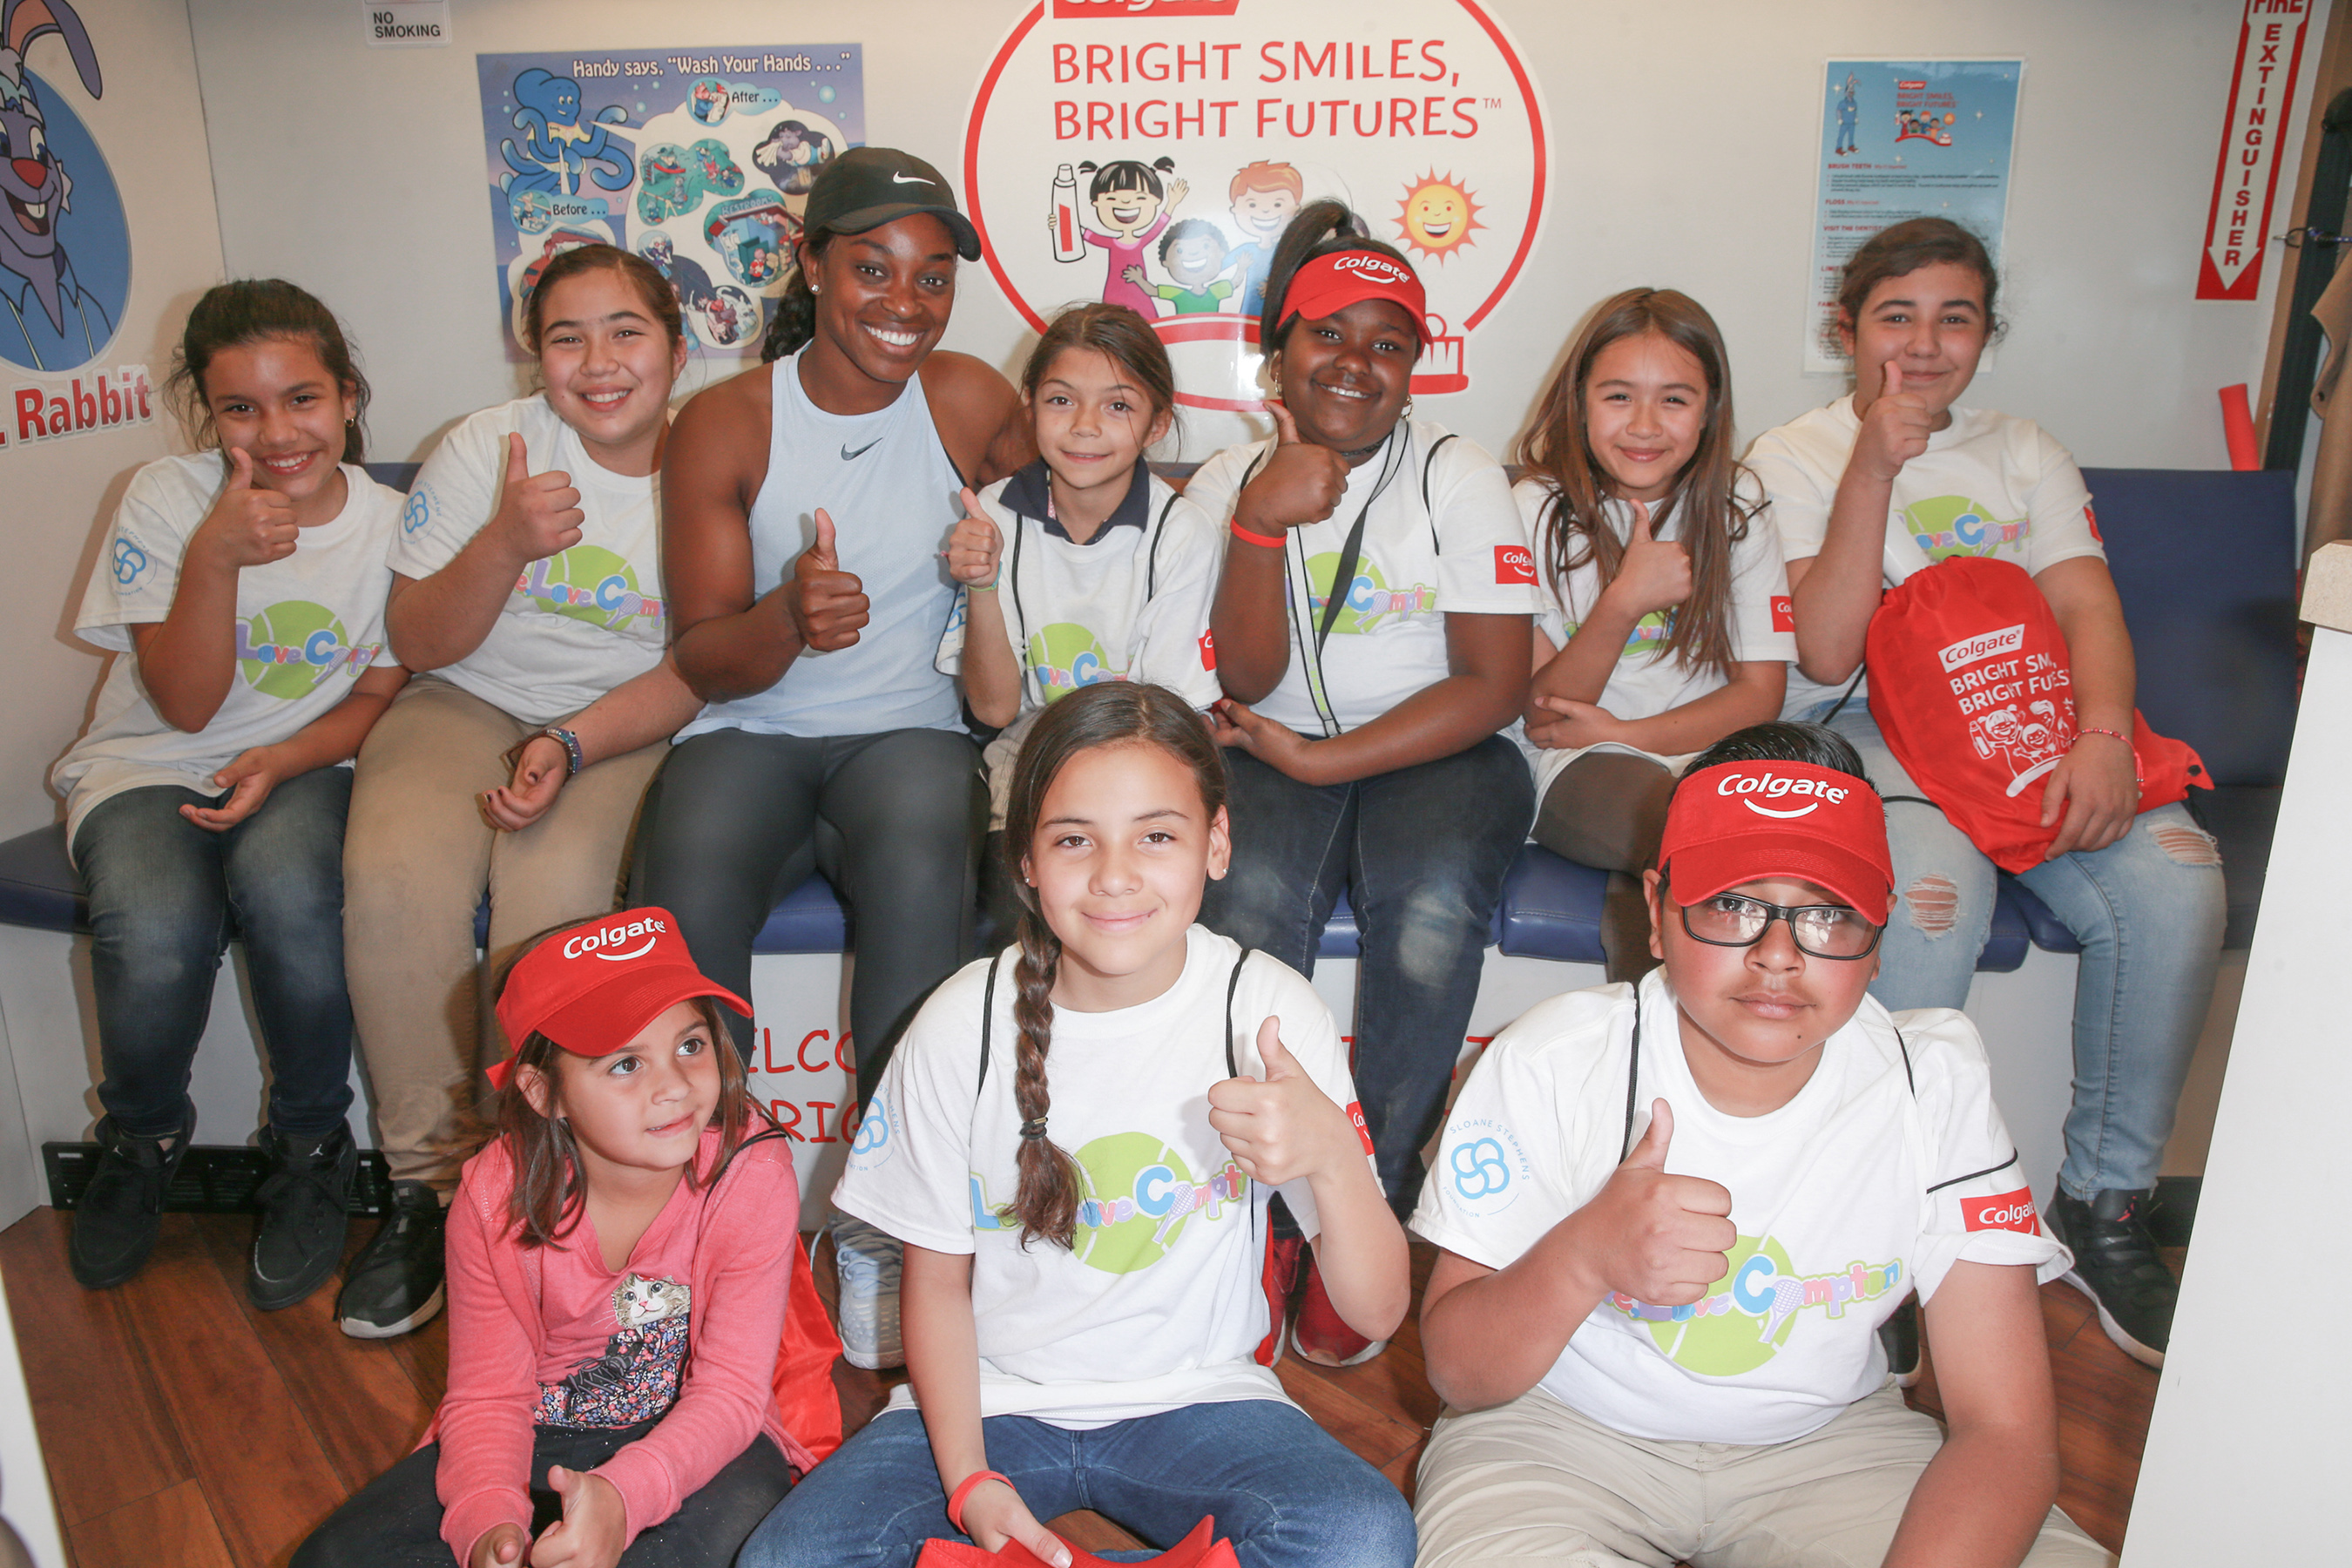 Colgate Bright Smiles, Bright Futures® and Sloane Stephens are #ServingUpSmiles for America's Kids